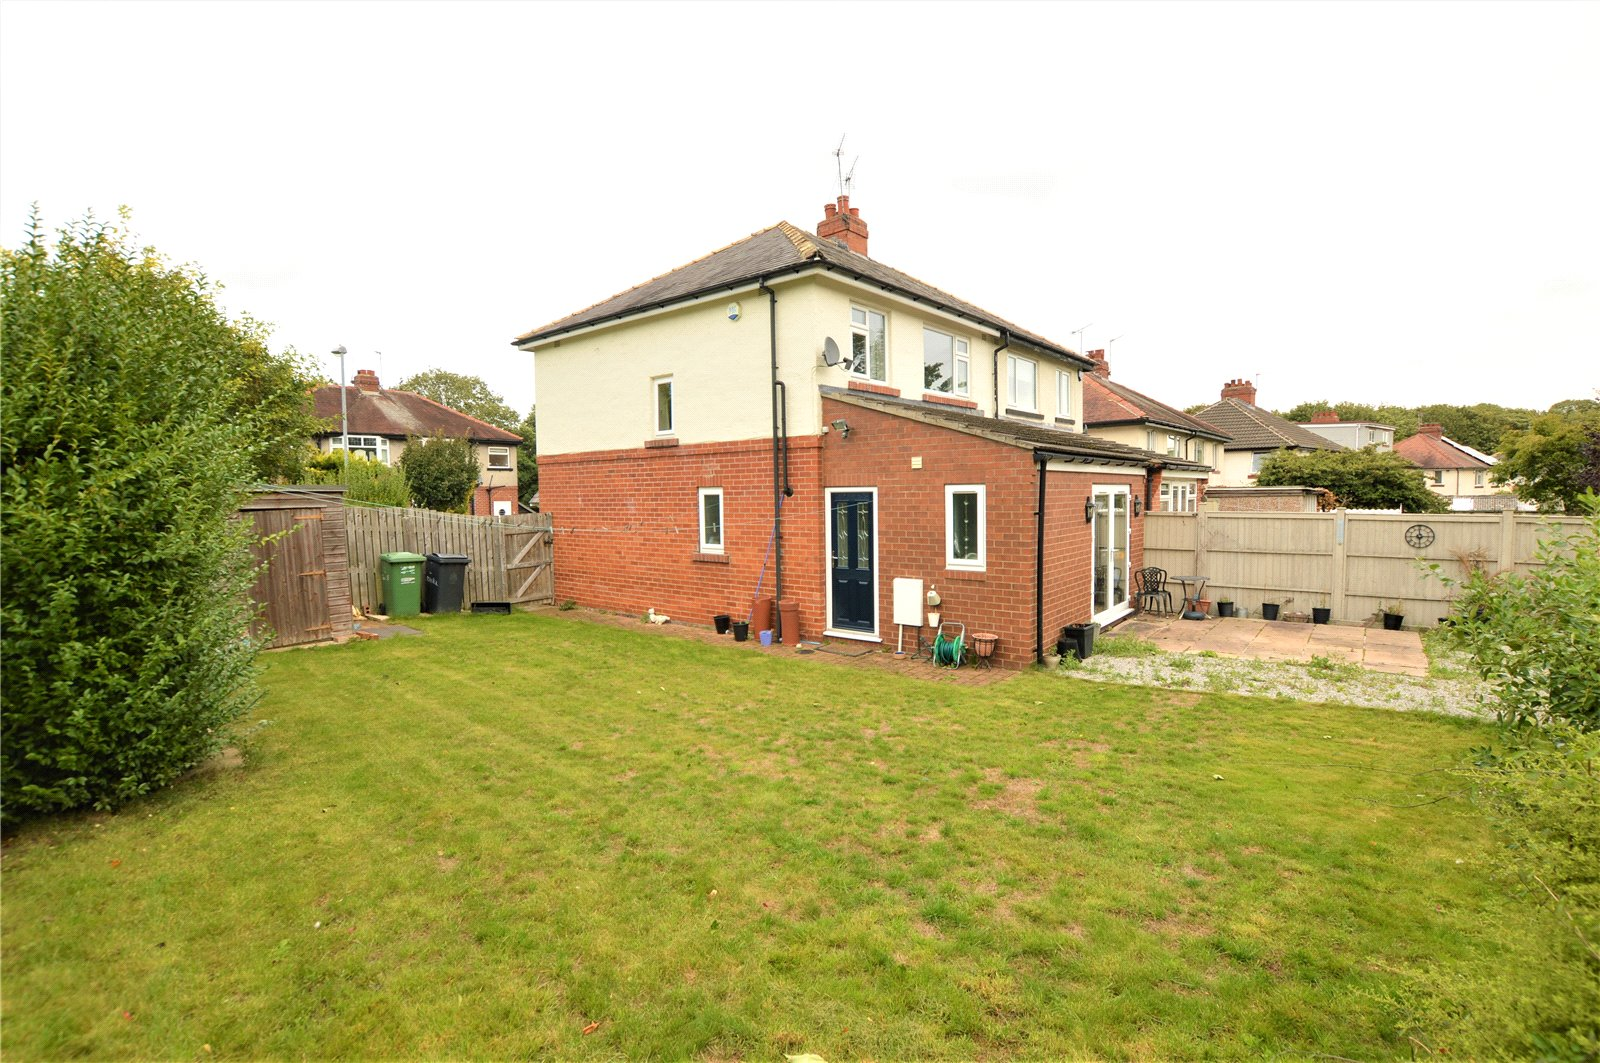 property for sale in Wetherby, exterior rear garden grass lawn